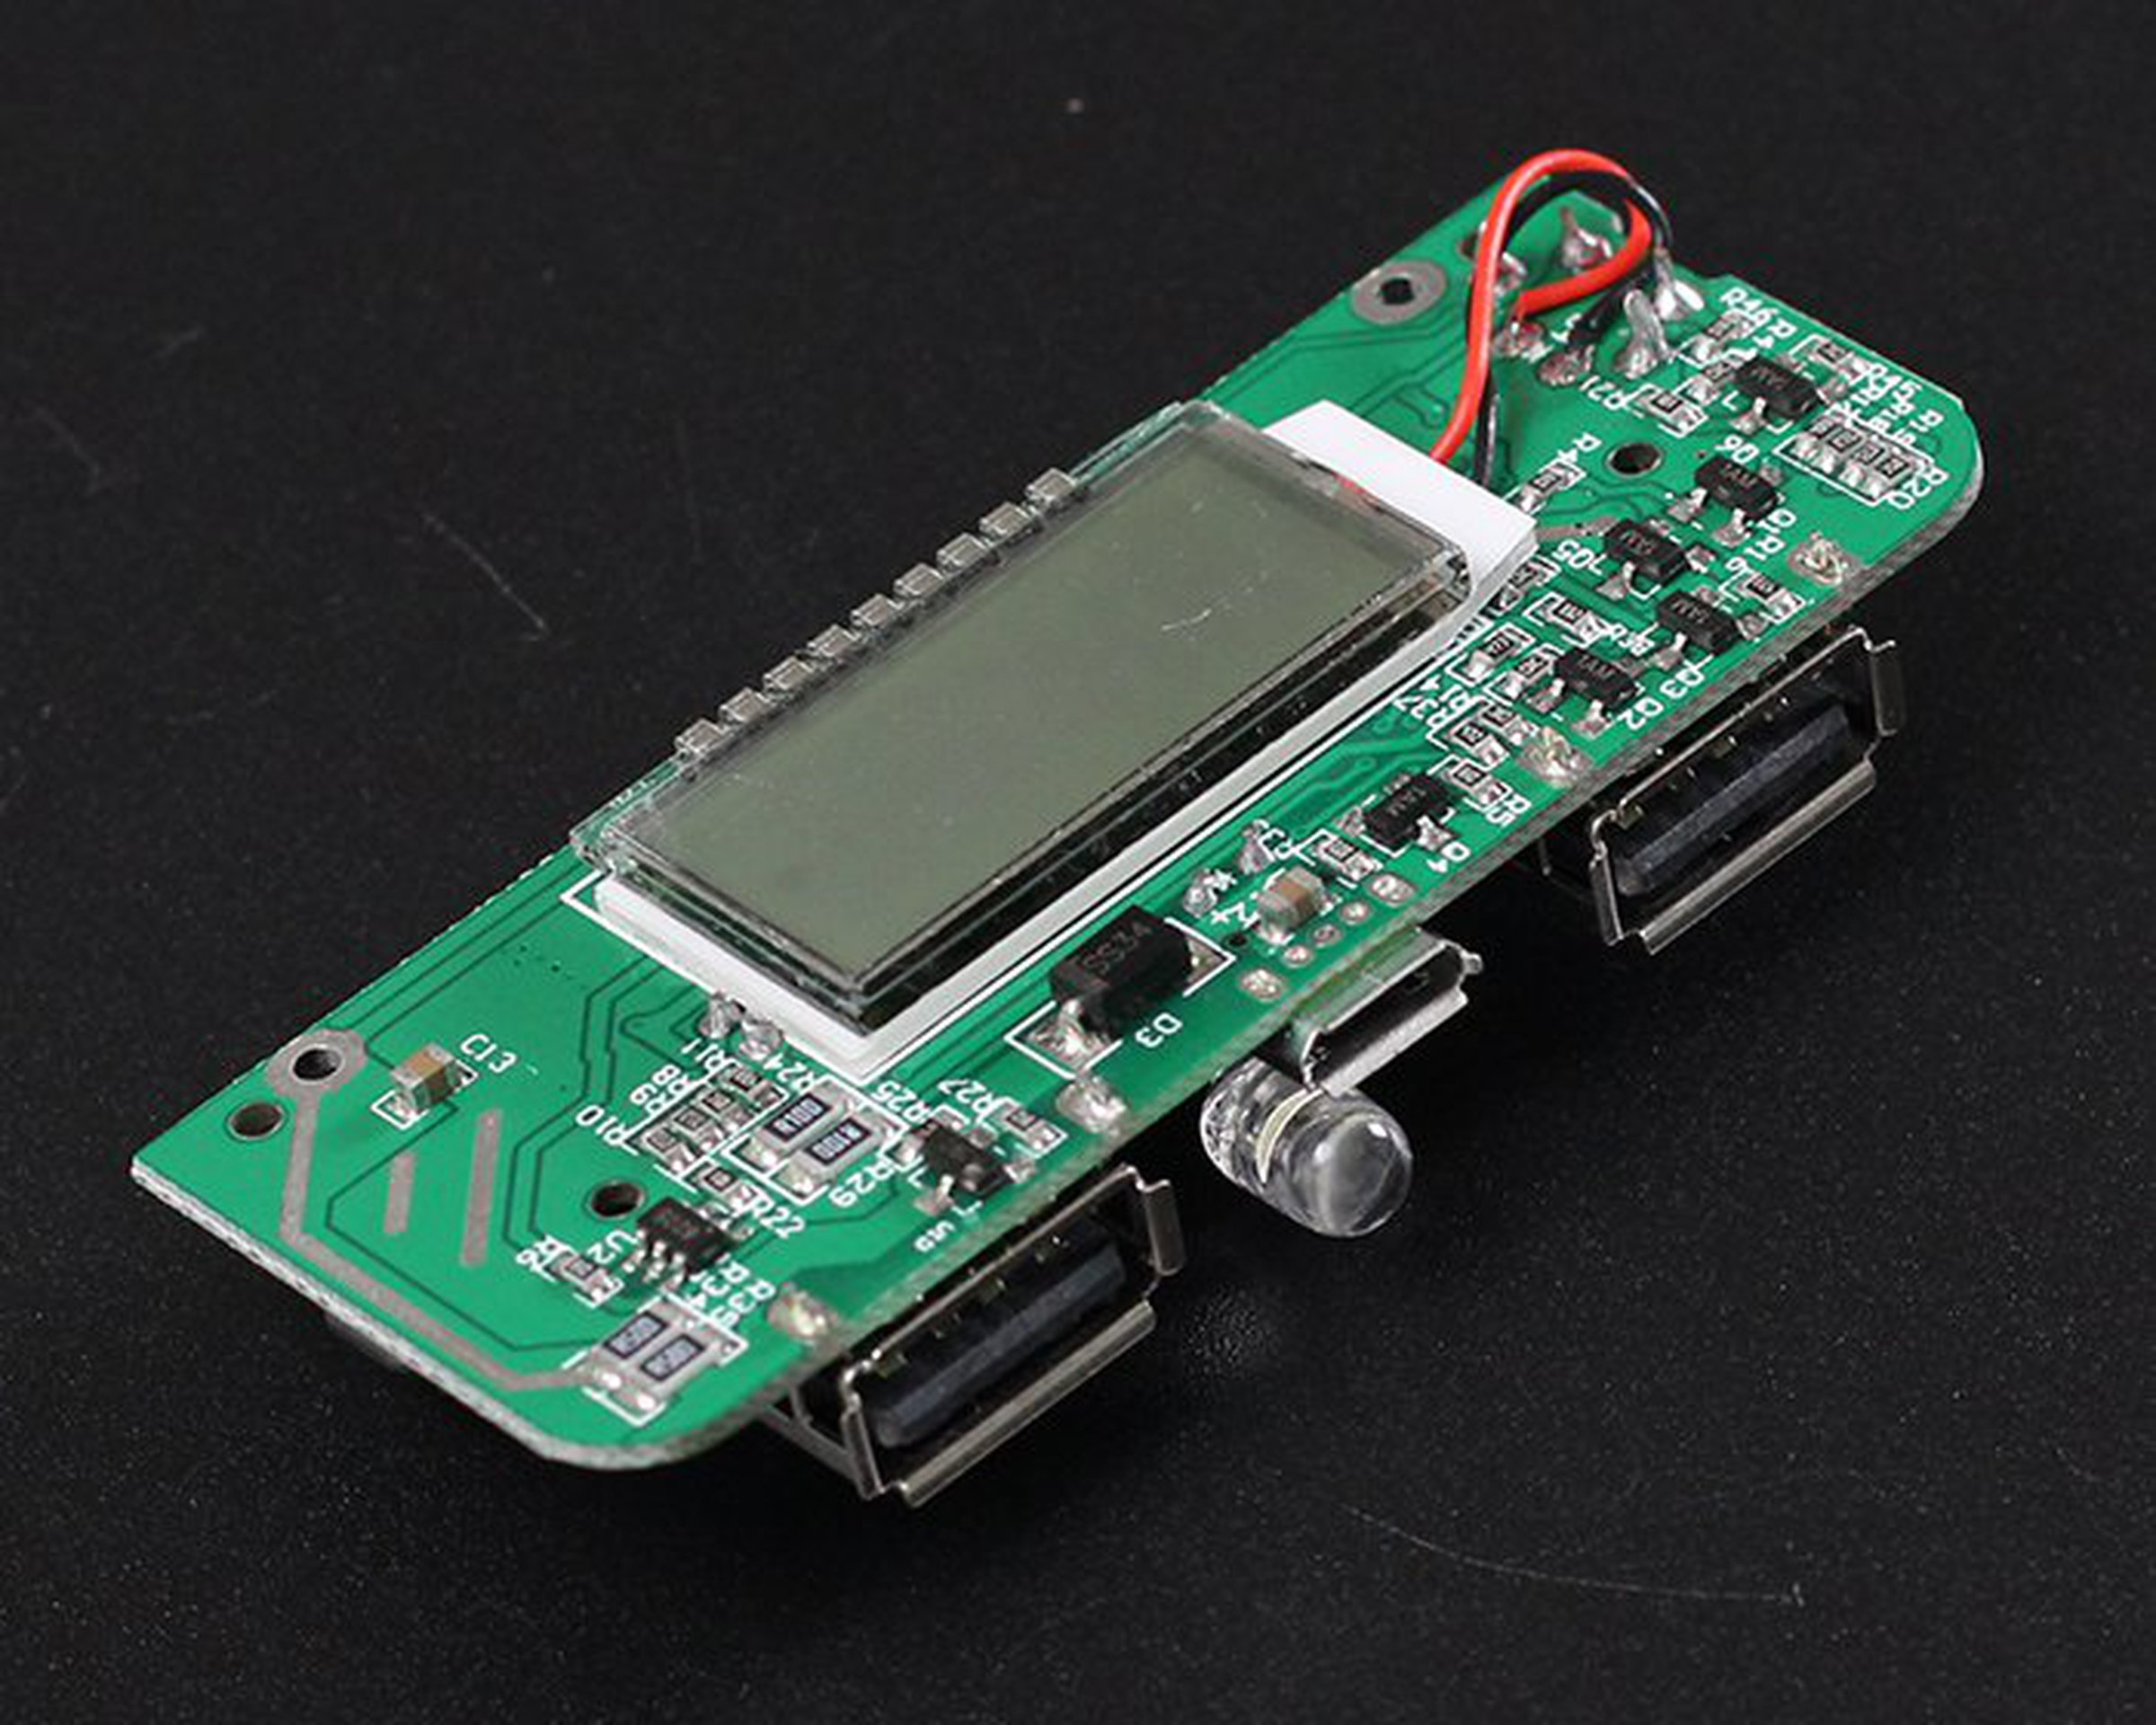 Two Usb Mobile Power Bank Charger Pcb Board6876 From Icstation On Recycled Circuit Board Small Notebook 4